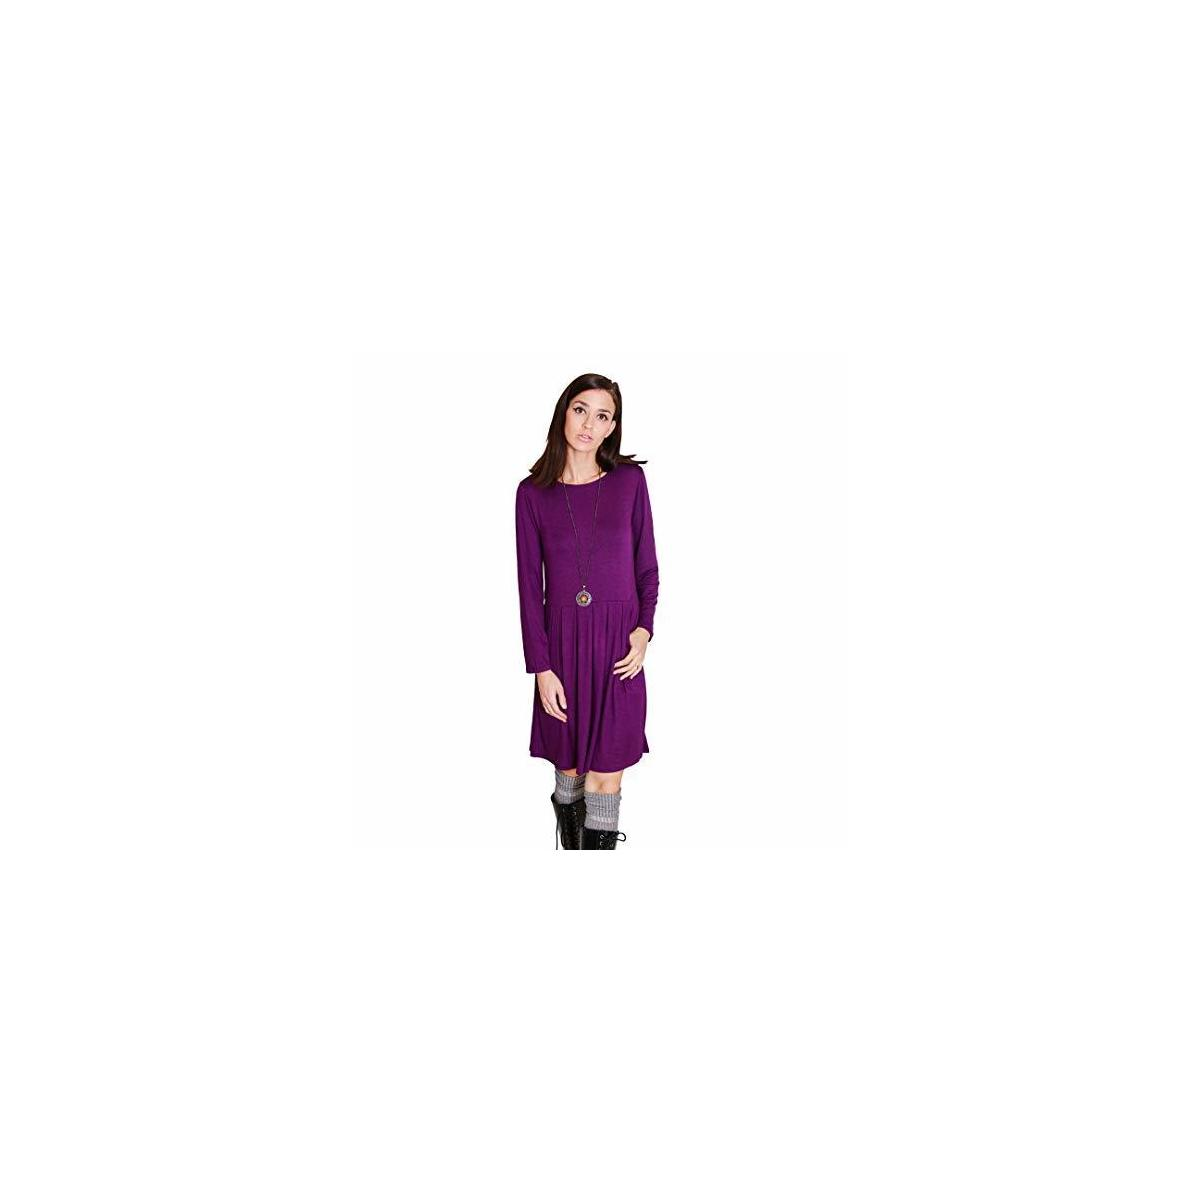 Happy Trunks Women's Tshirt Dress Long Sleeve Pleated Loose Swing Casual with Pockets Knee Length Comfy Tunic Solid Colors